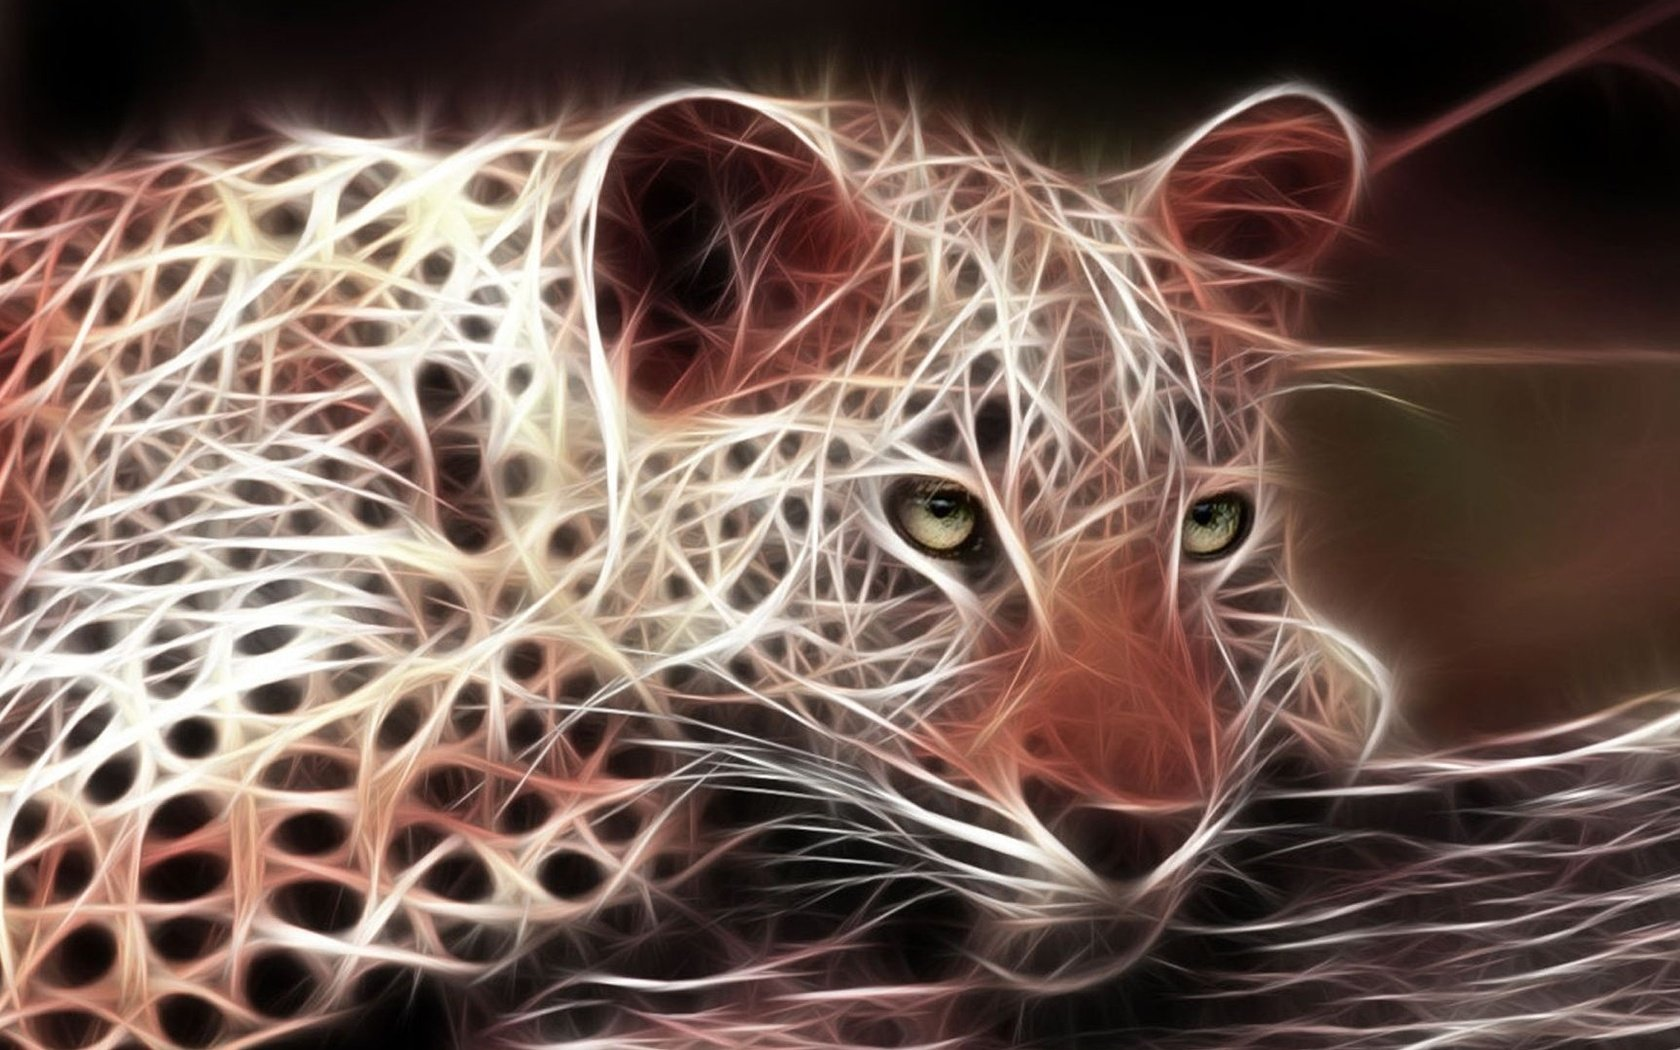 3d wallpapers hd animals - photo #2